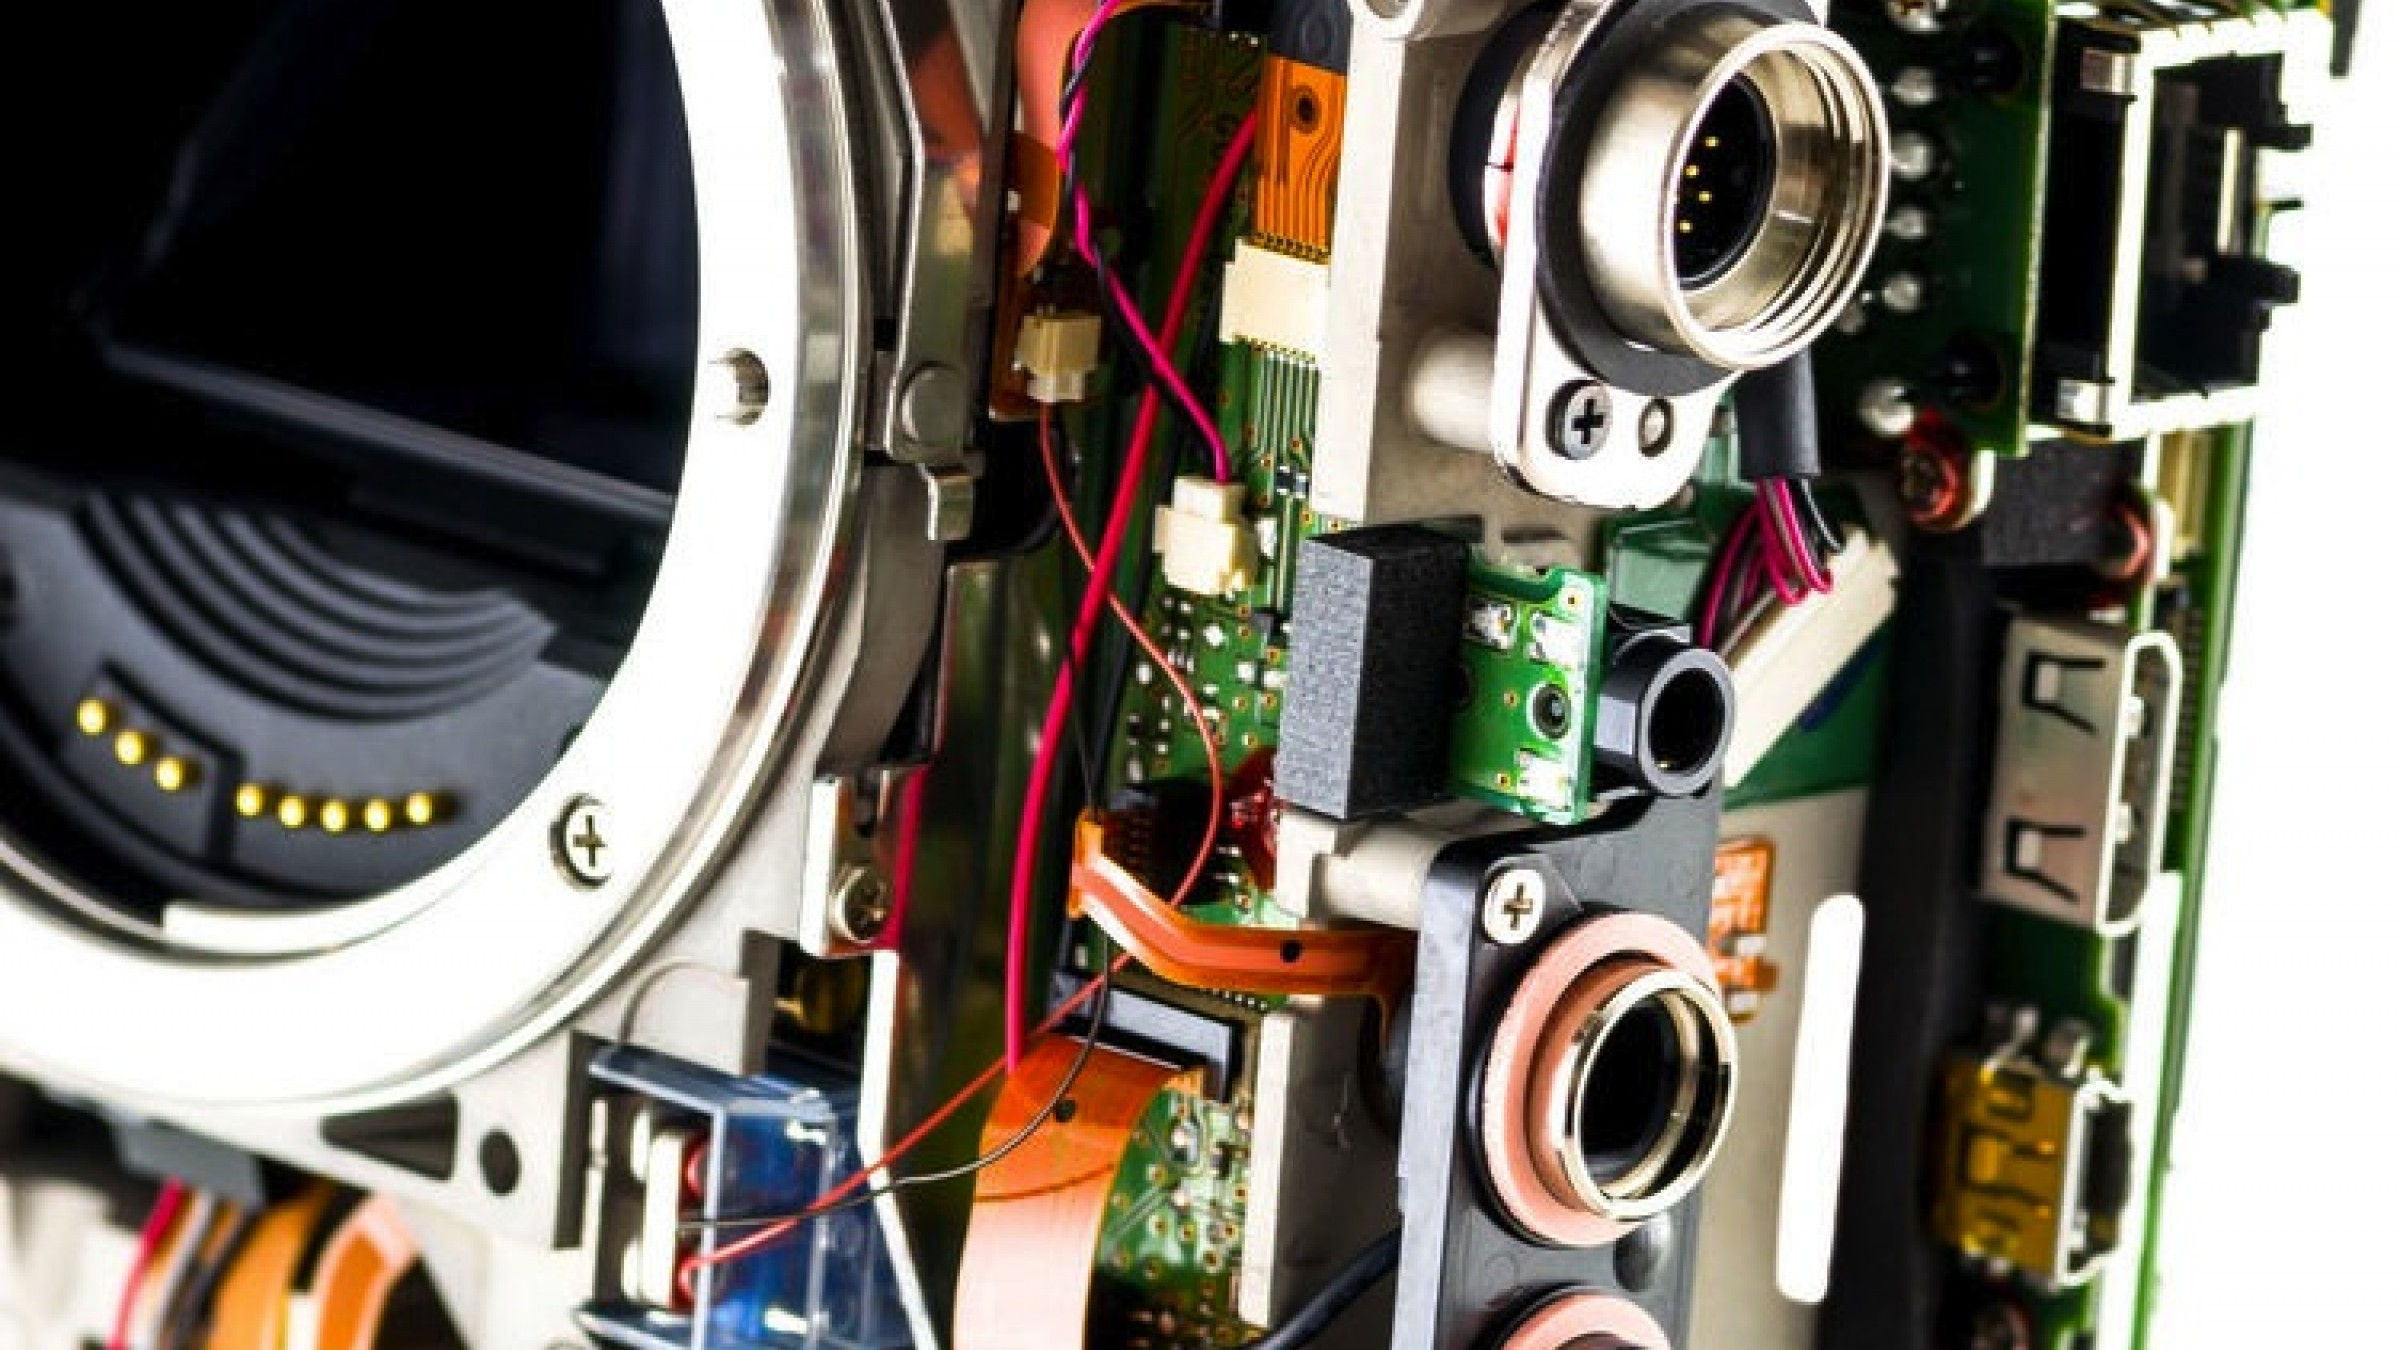 Learn How to Fix Your Own Camera from This New Teardown Website